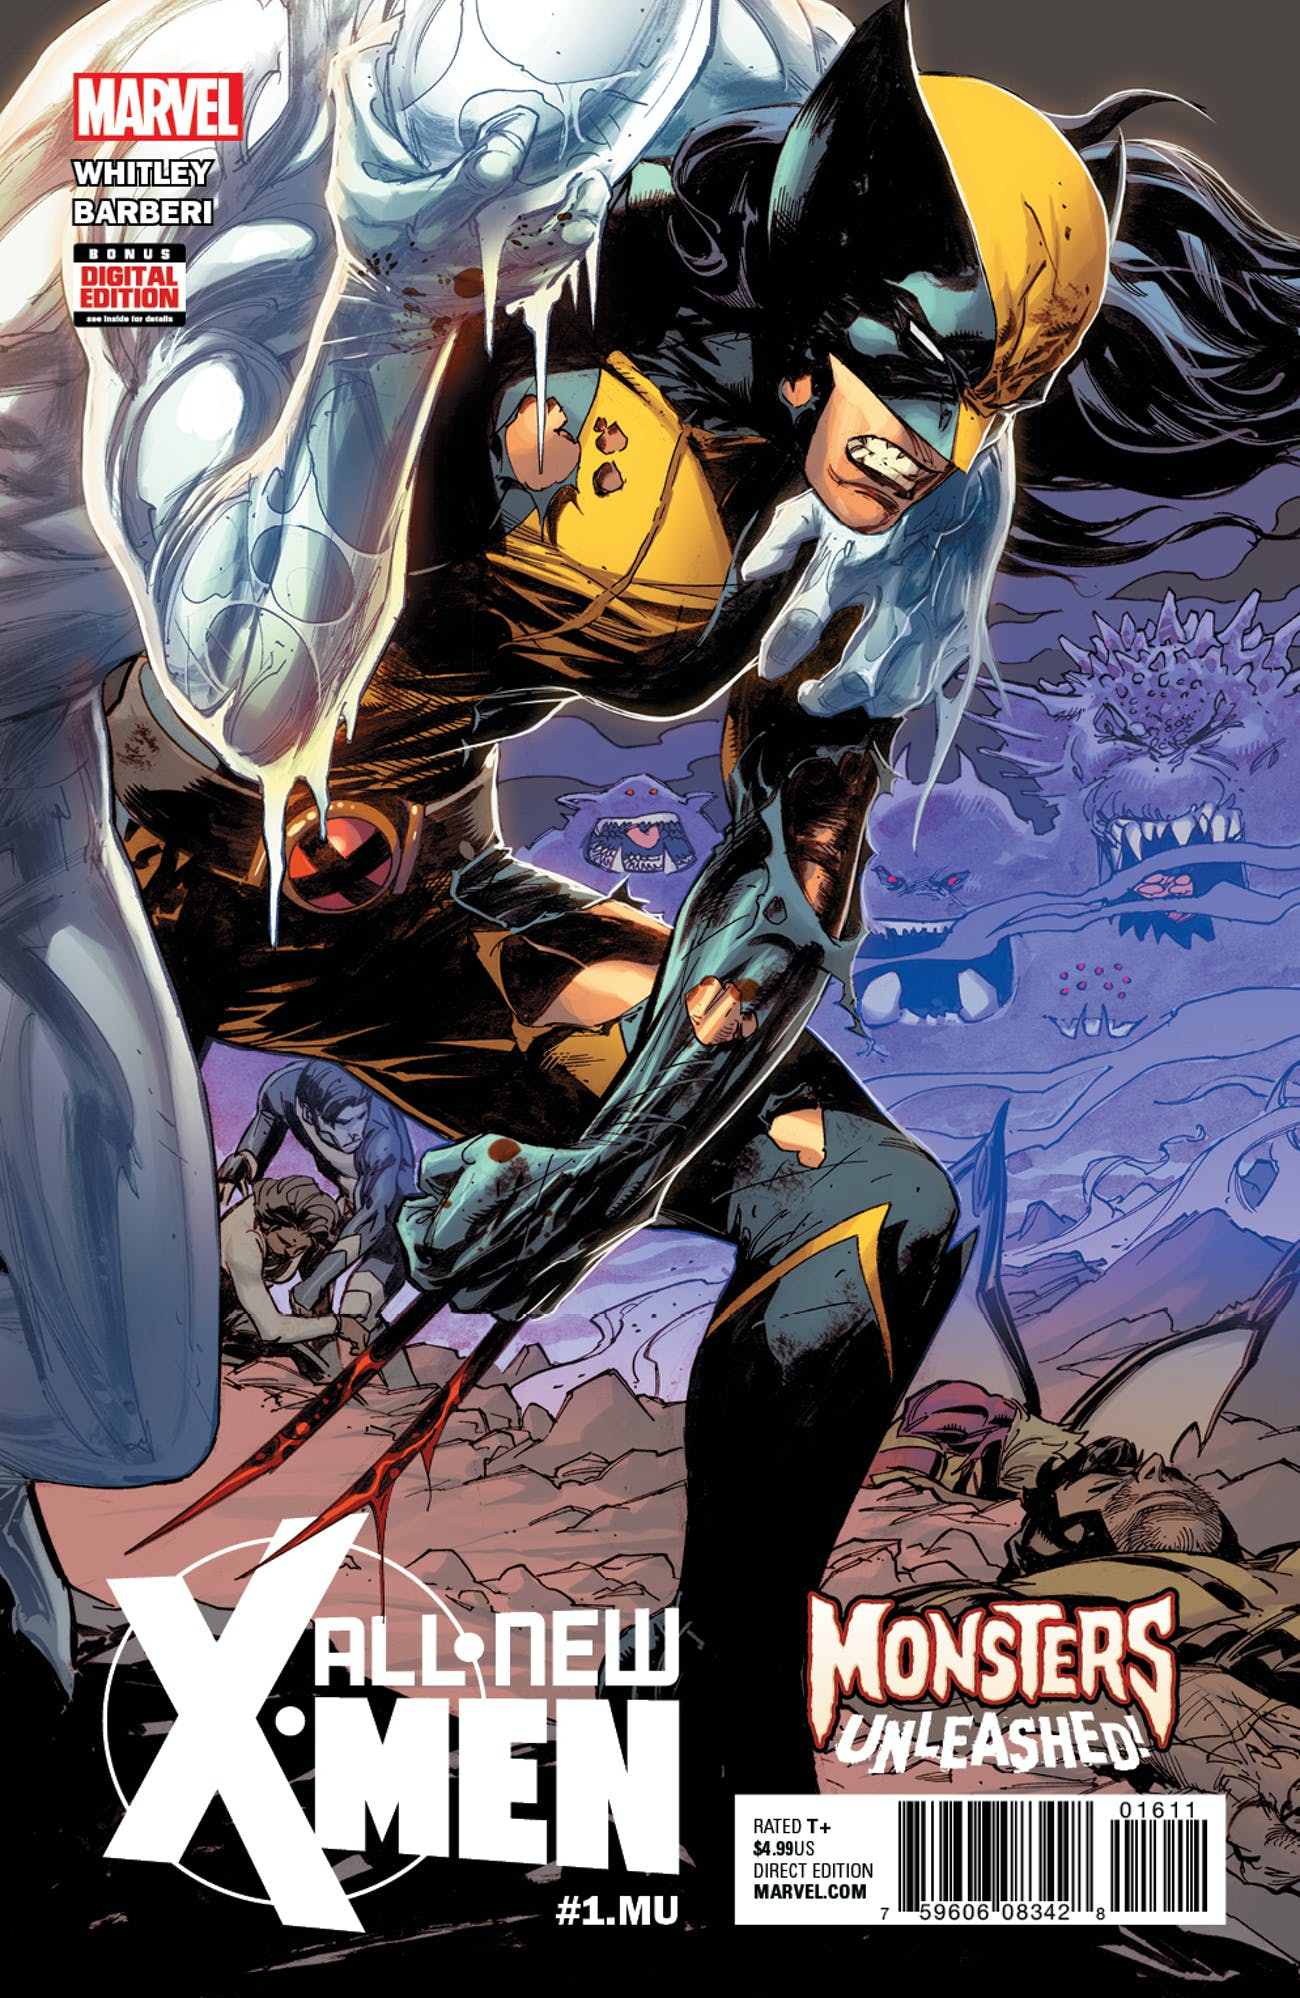 Cover for All-New X-Men Monsters Unleashed by Marvel Comics